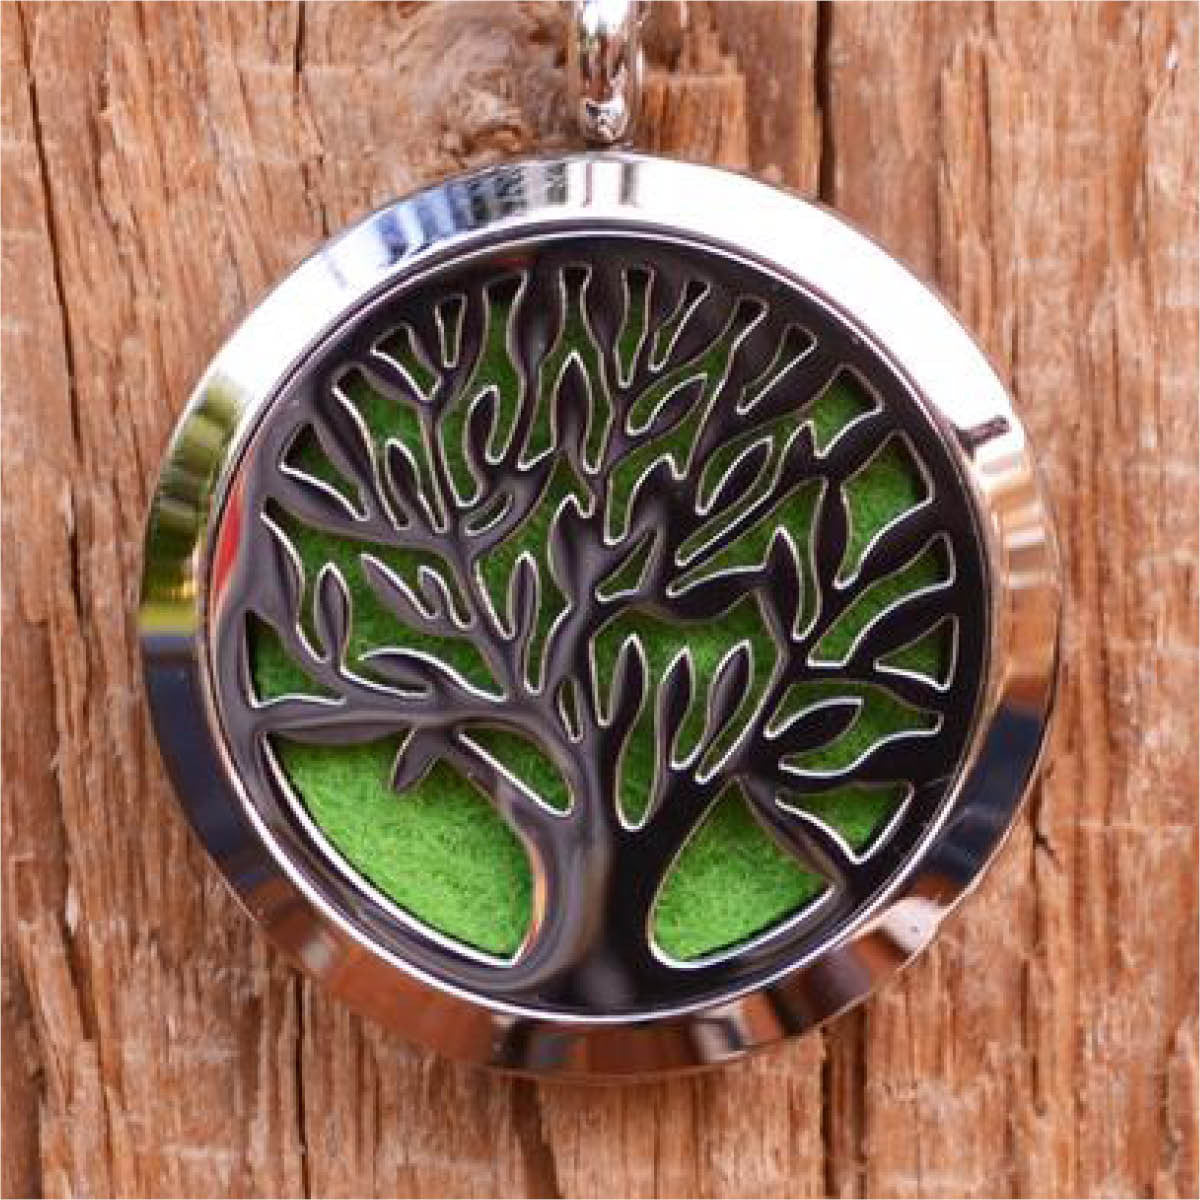 Tree of life aroma pendant necklace finesse home fragrances tree of life aroma pendant necklace aloadofball Gallery